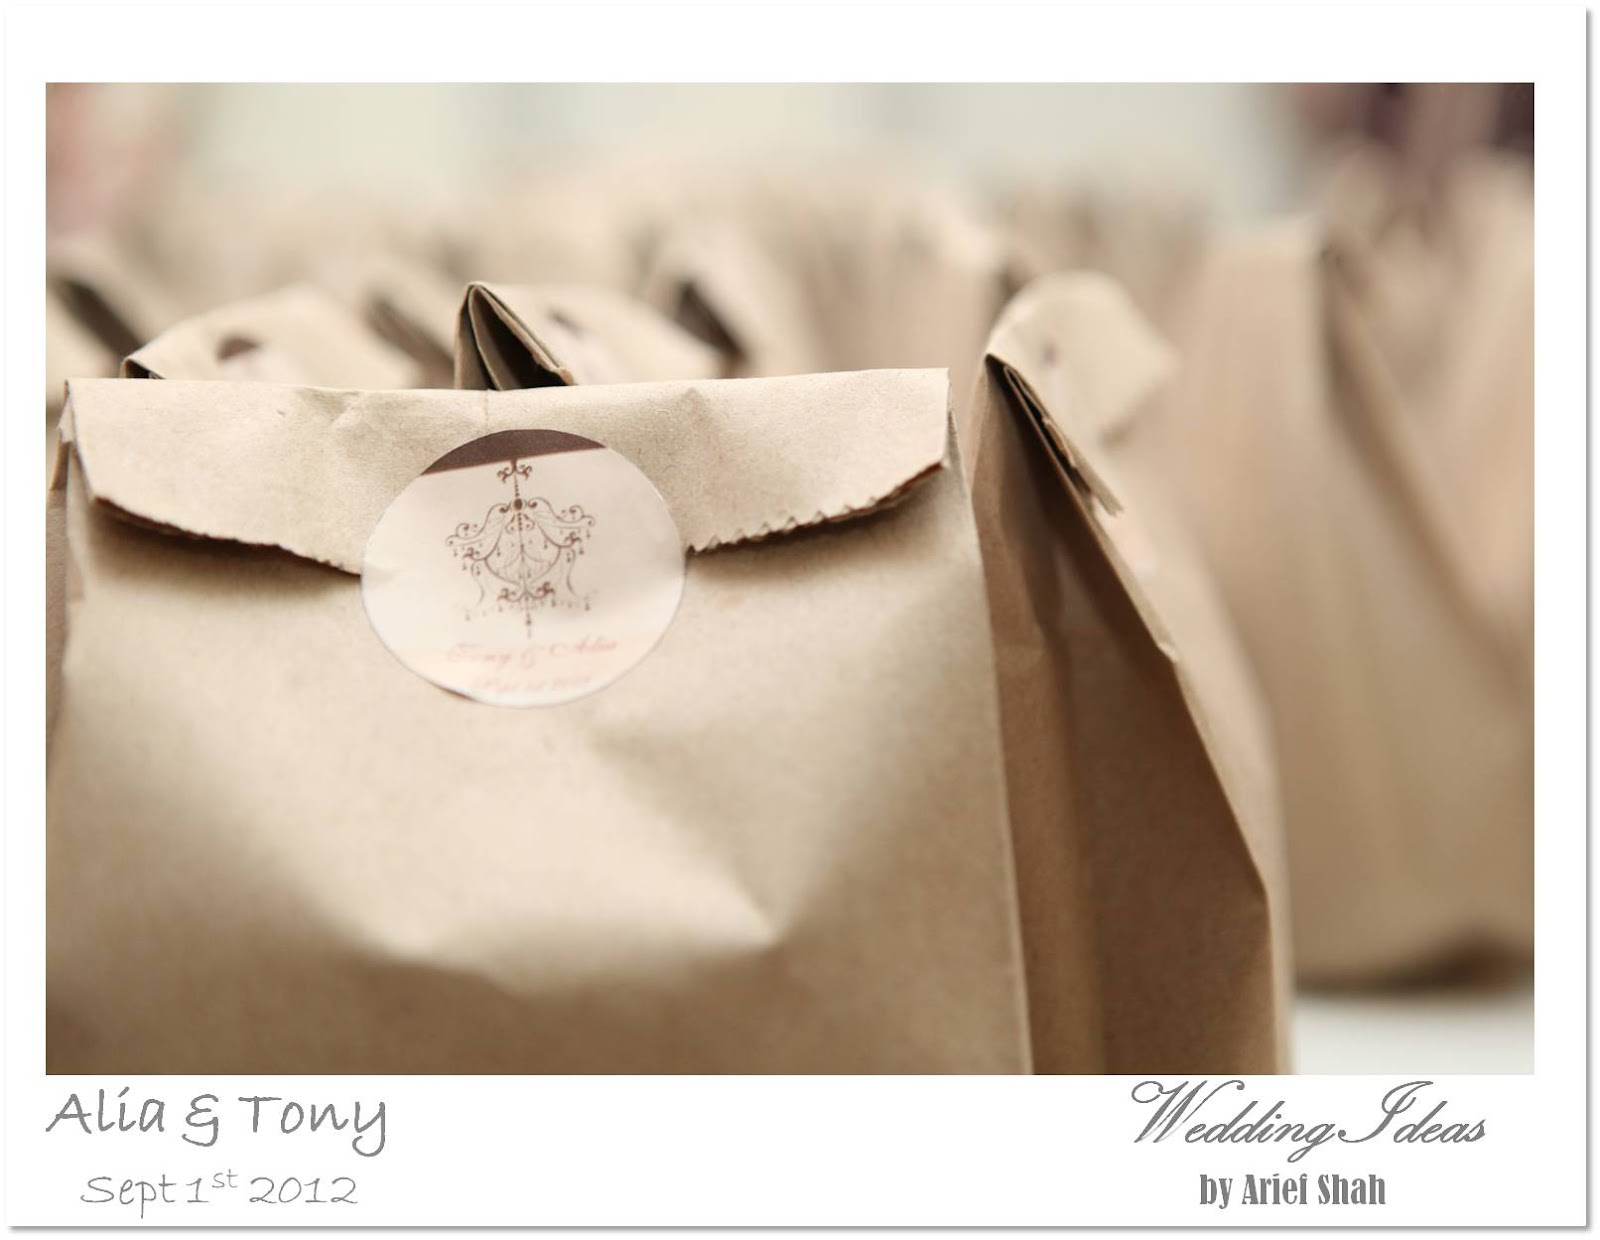 Wedding ideas teratak cinta by wedding ideas for Idea for door gift